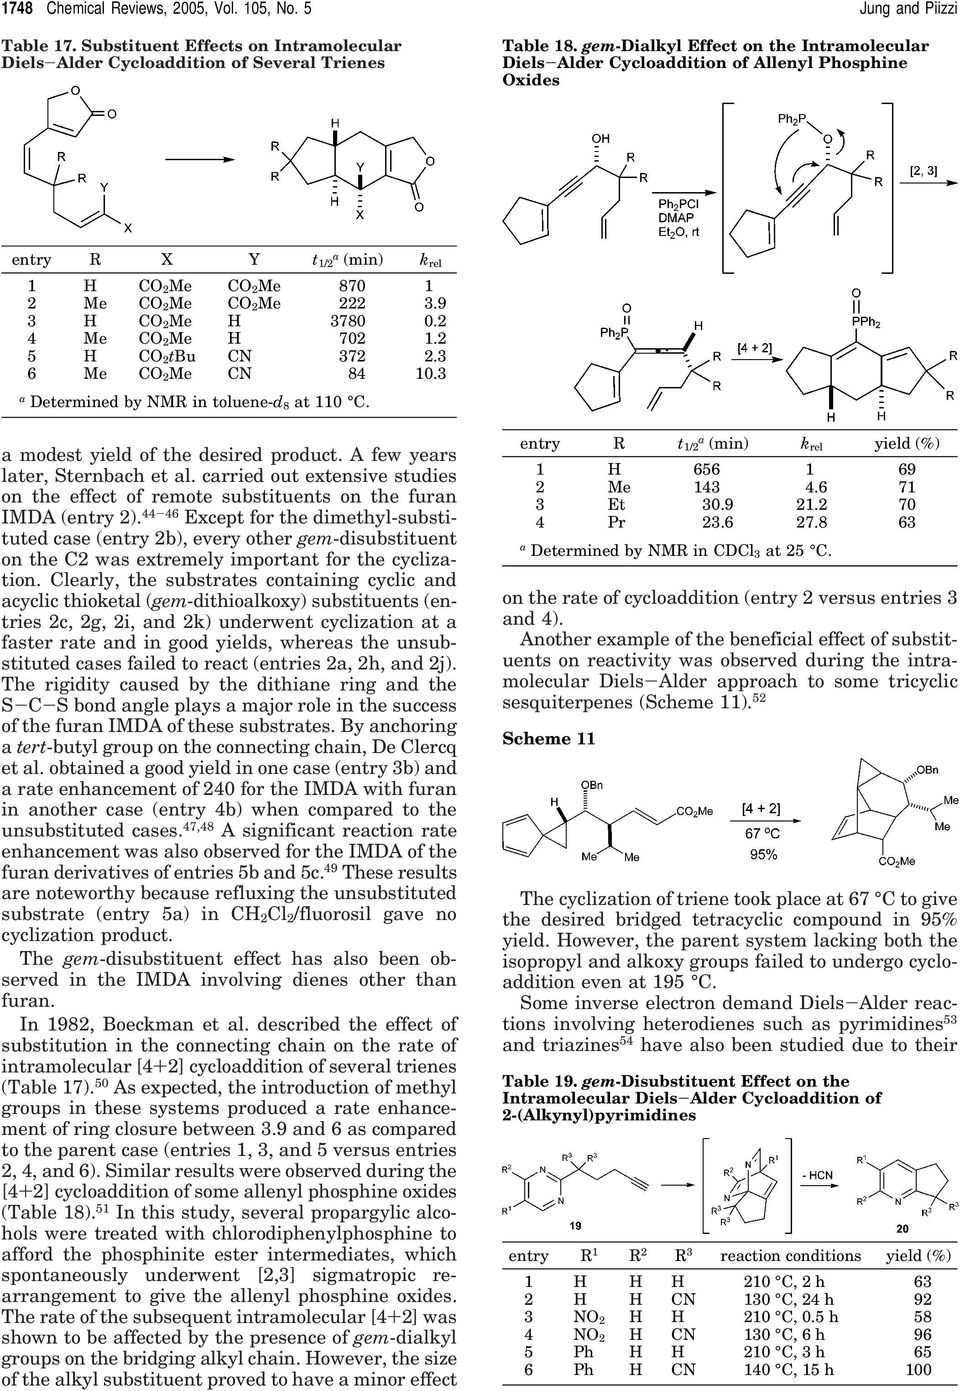 2 4 Me CO 2Me H 702 1.2 5 H CO 2tBu CN 372 2.3 6 Me CO 2Me CN 84 10.3 a Determined by NMR in toluene-d 8 at 110 C. a modest yield of the desired product. A few years later, Sternbach et al.